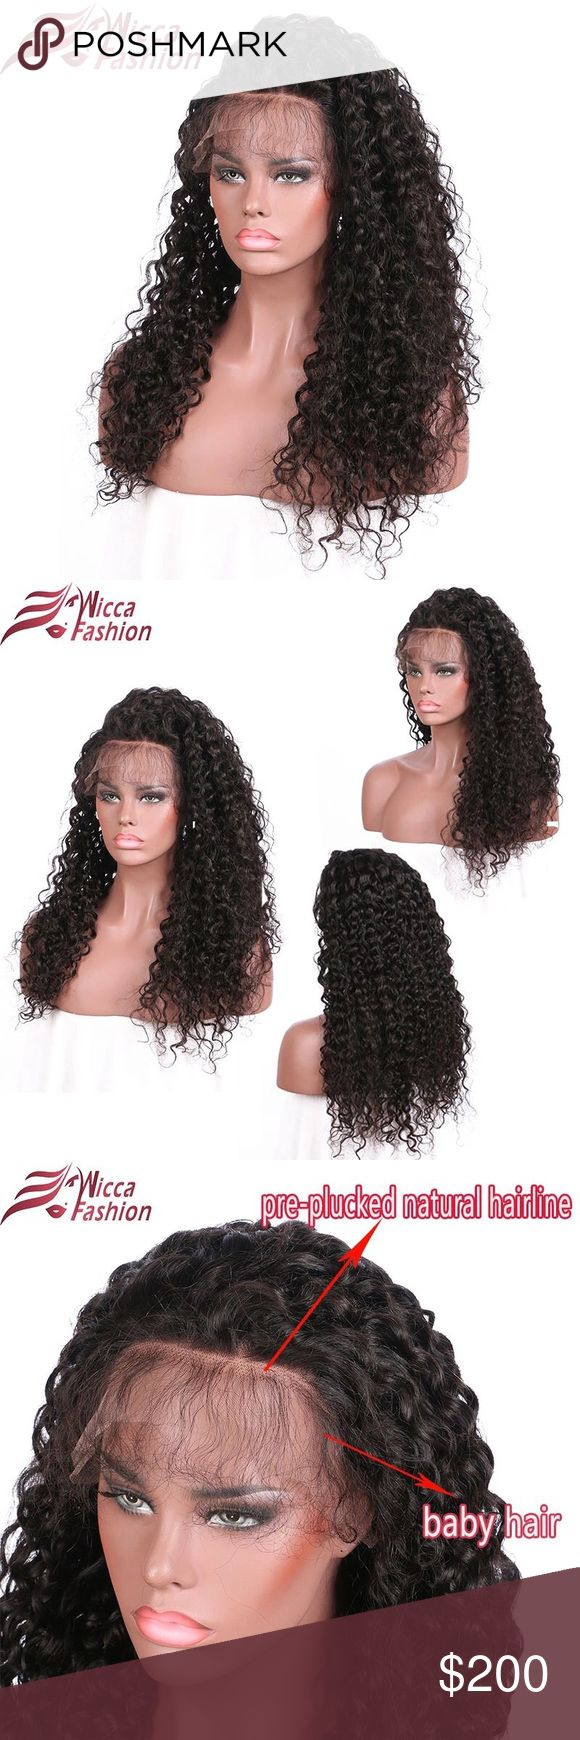 "Wicca Fashion Non remy curly wig wicca fashion Non-Remy Curly Wigs 16"" Nature Color Peruvian Lace Front Human Hair Wigs 150% Density Frontal Lace Wig wicca Accessories Hair Accessories"